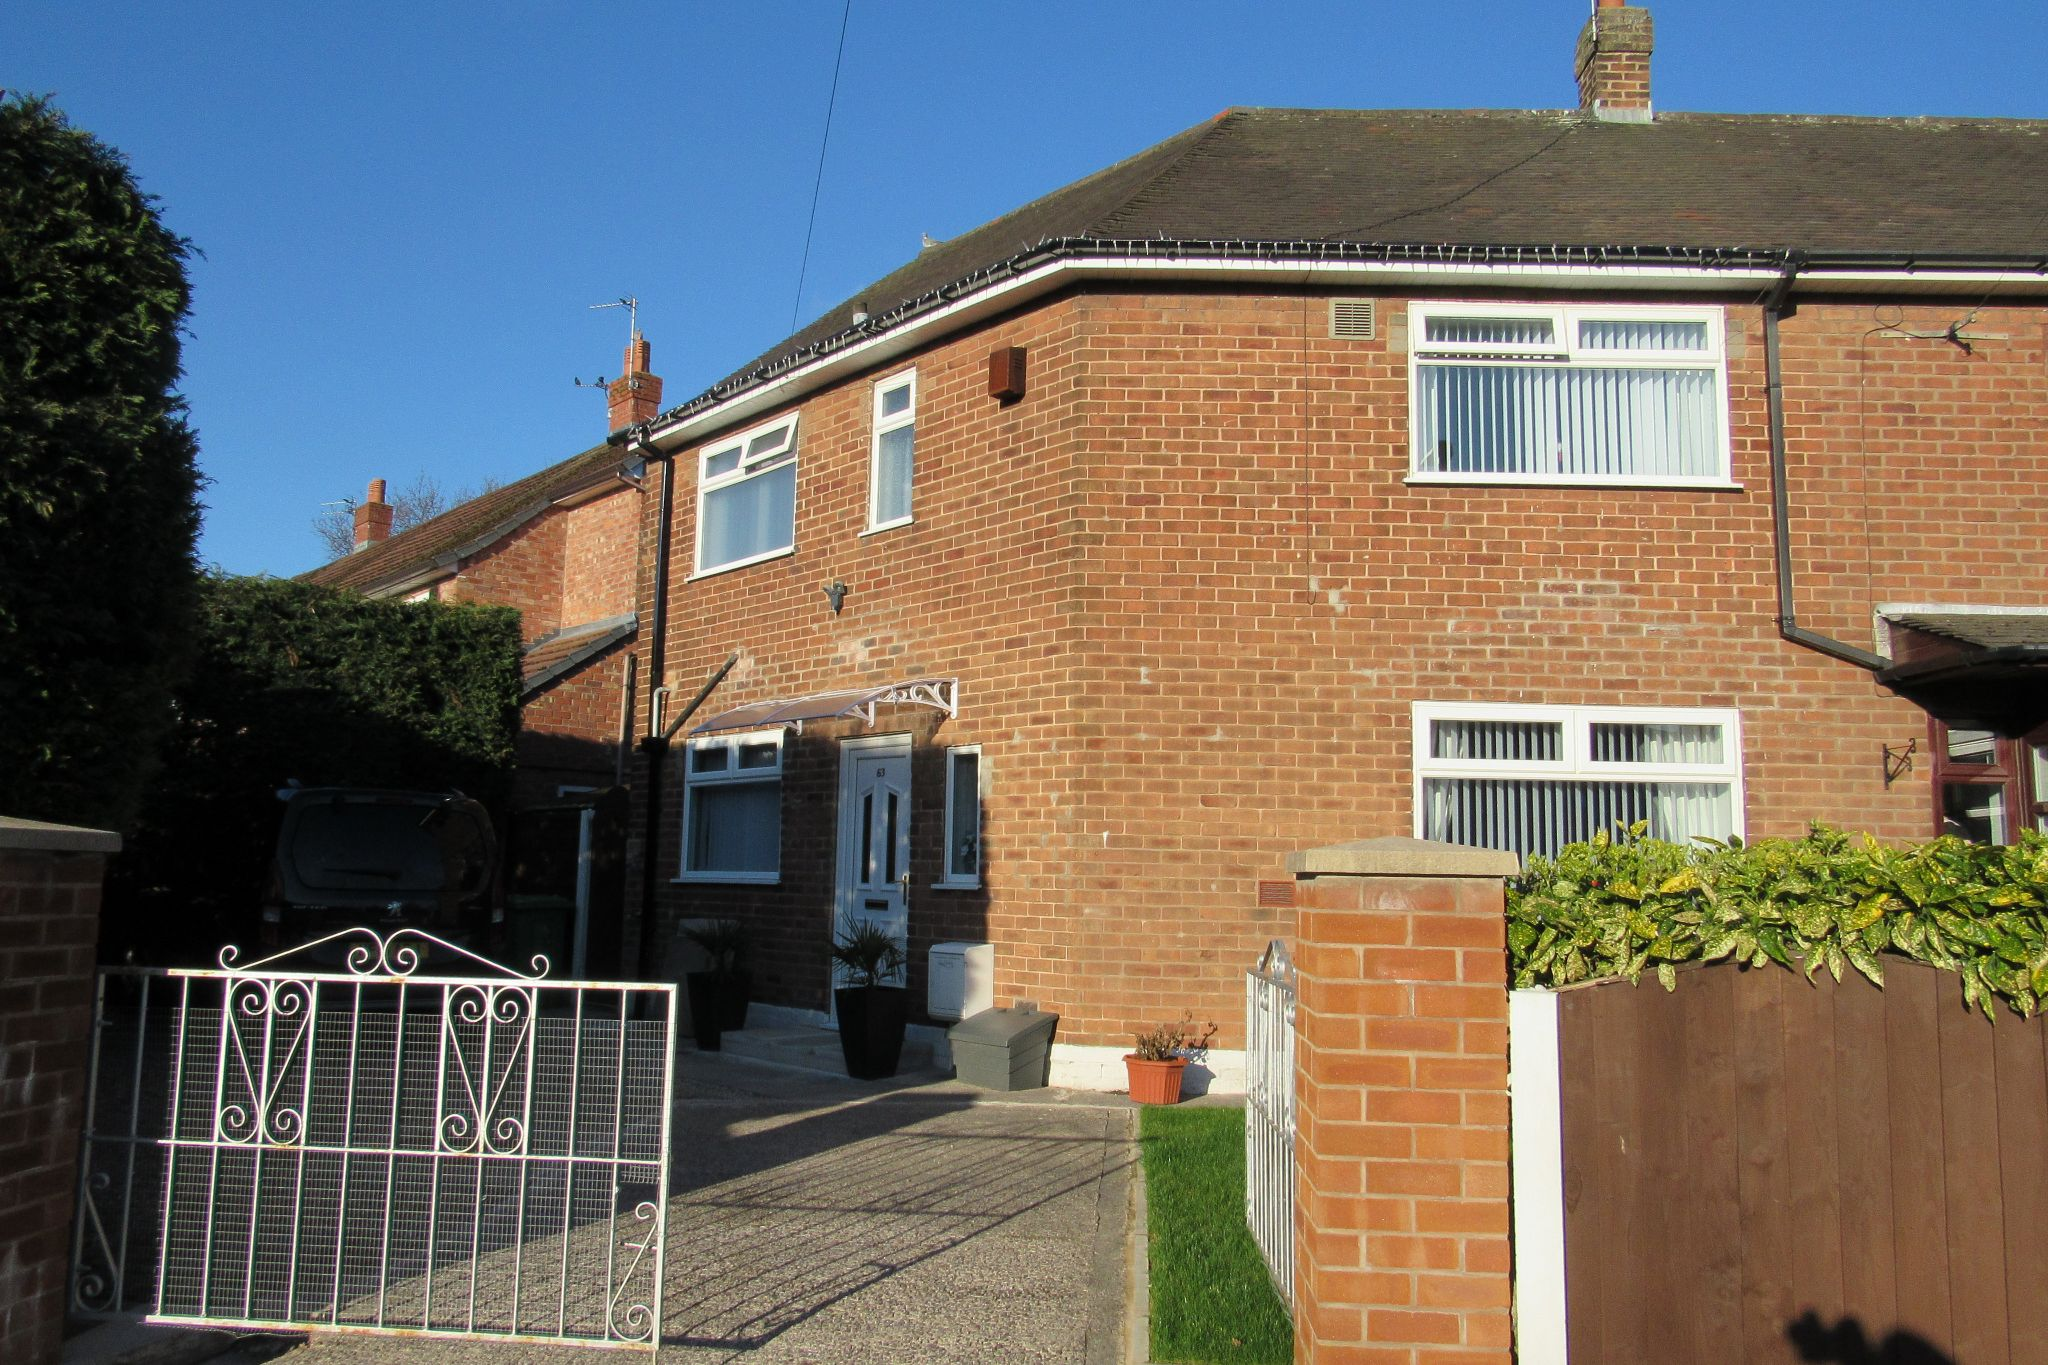 3 bedroom end terraced house SSTC in Manchester - Photograph 19.